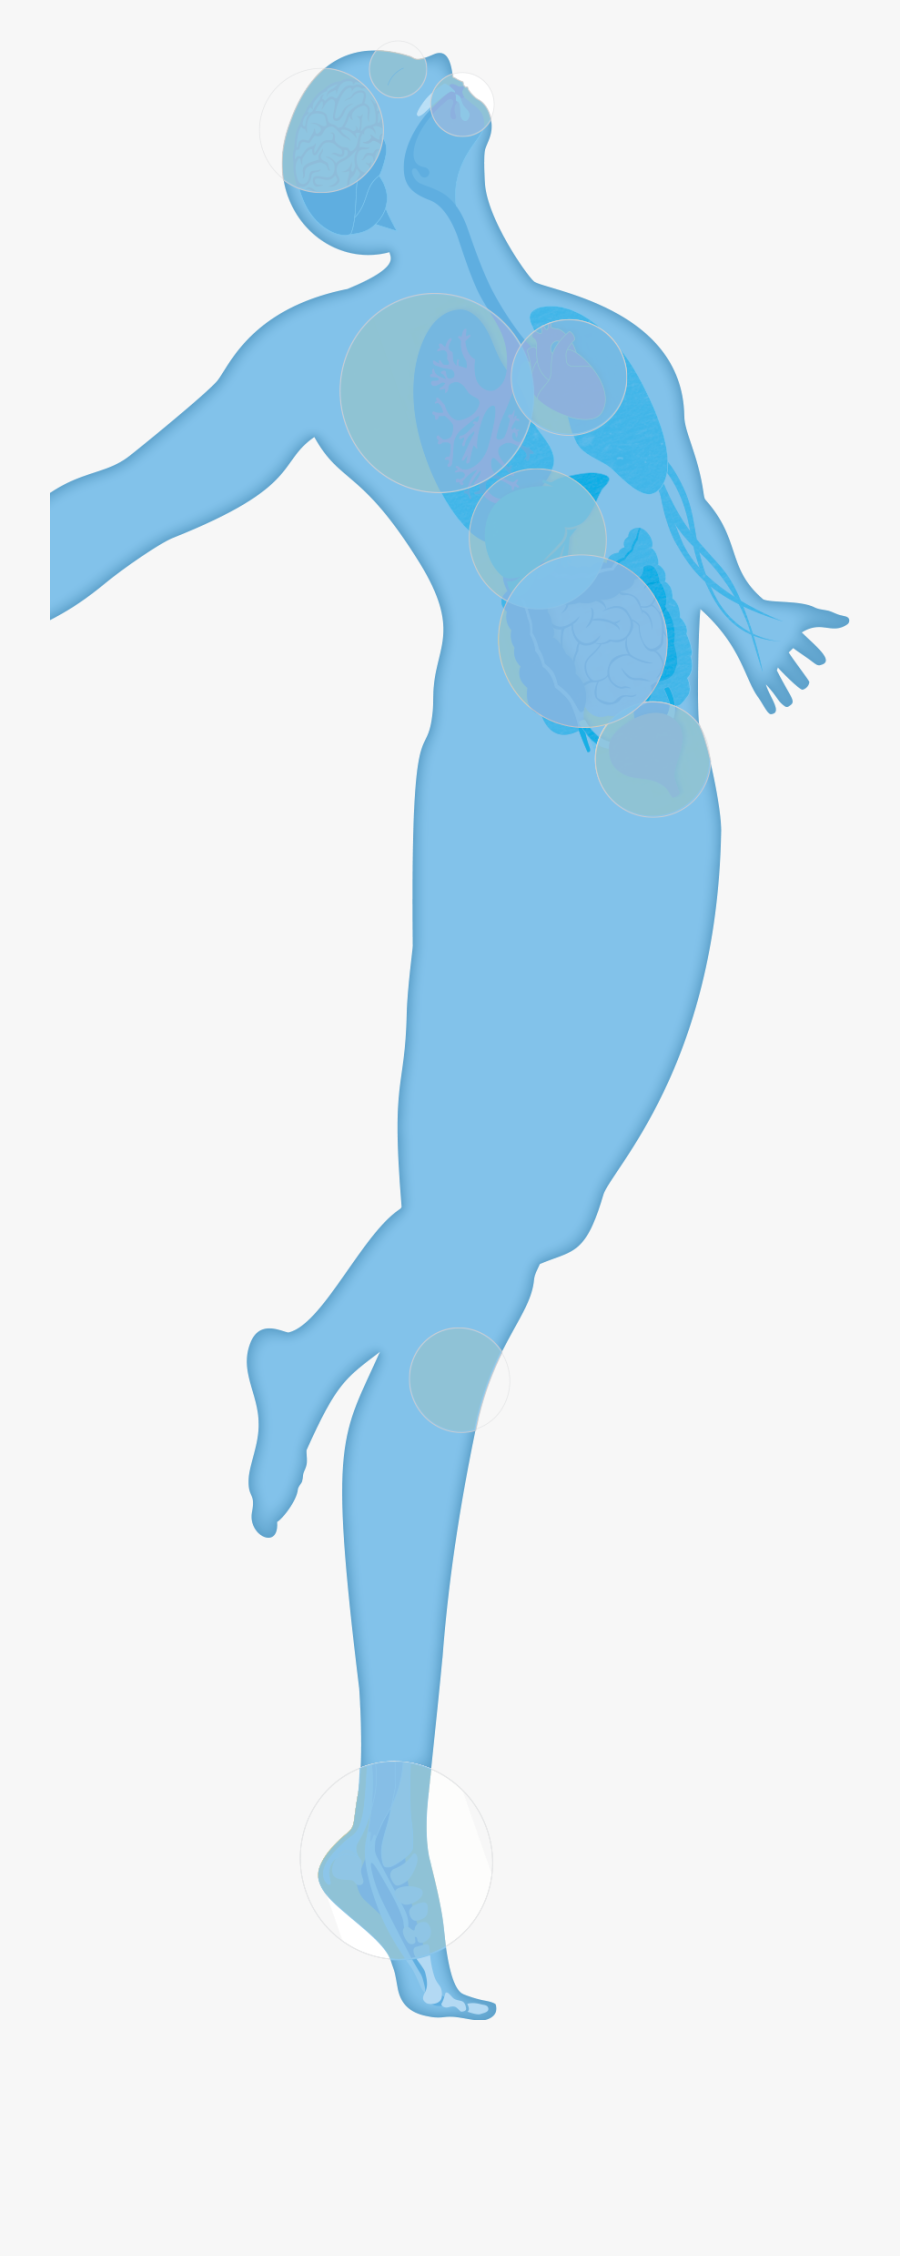 Your Amazing Body Clipart , Png Download - Illustration, Transparent Clipart